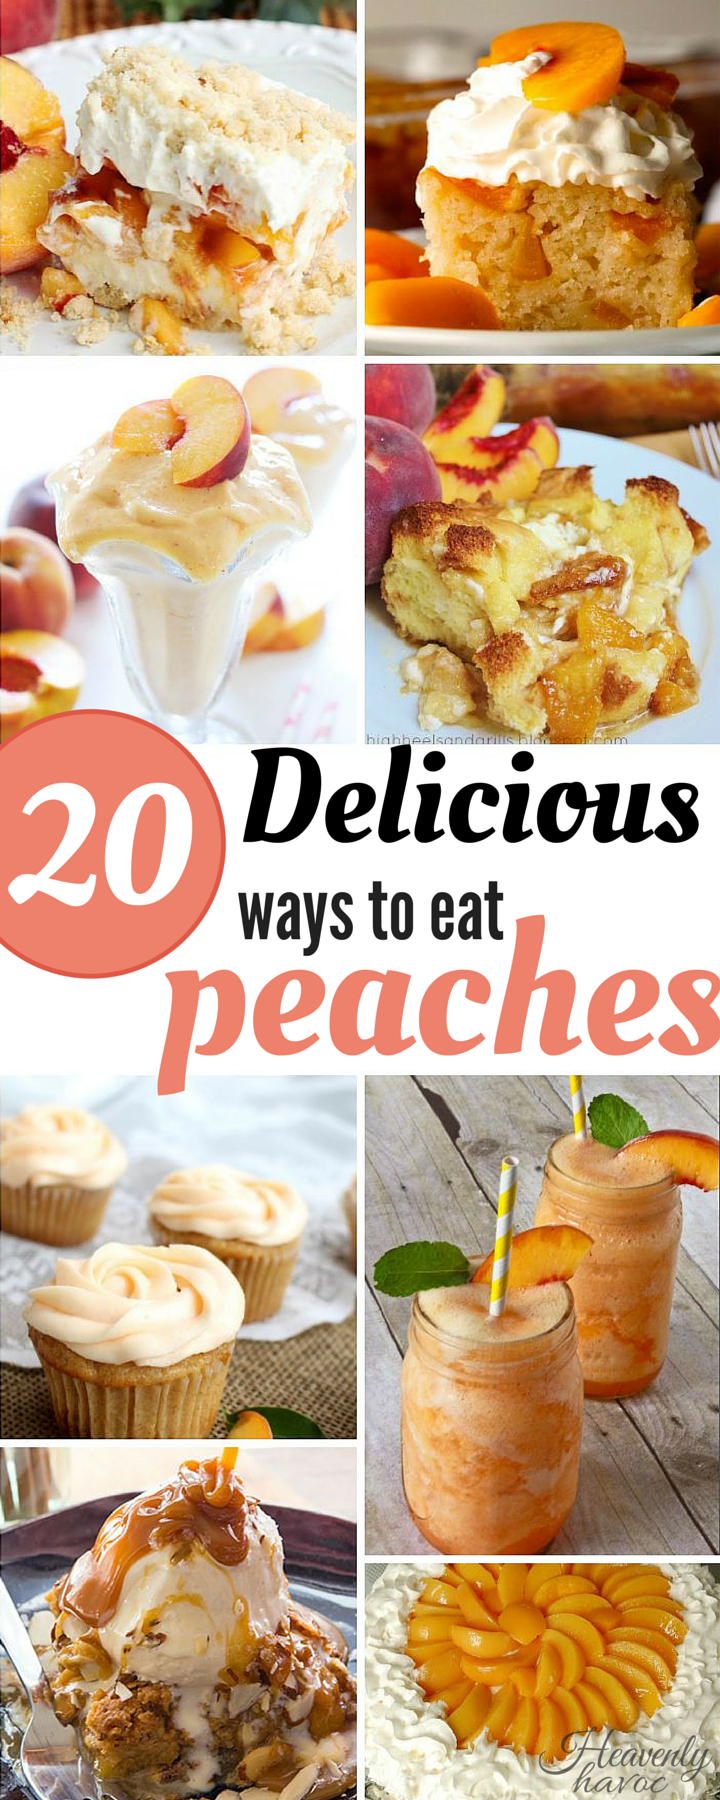 I can't wait to try these delicious peach recipes! #DoubletheBatch